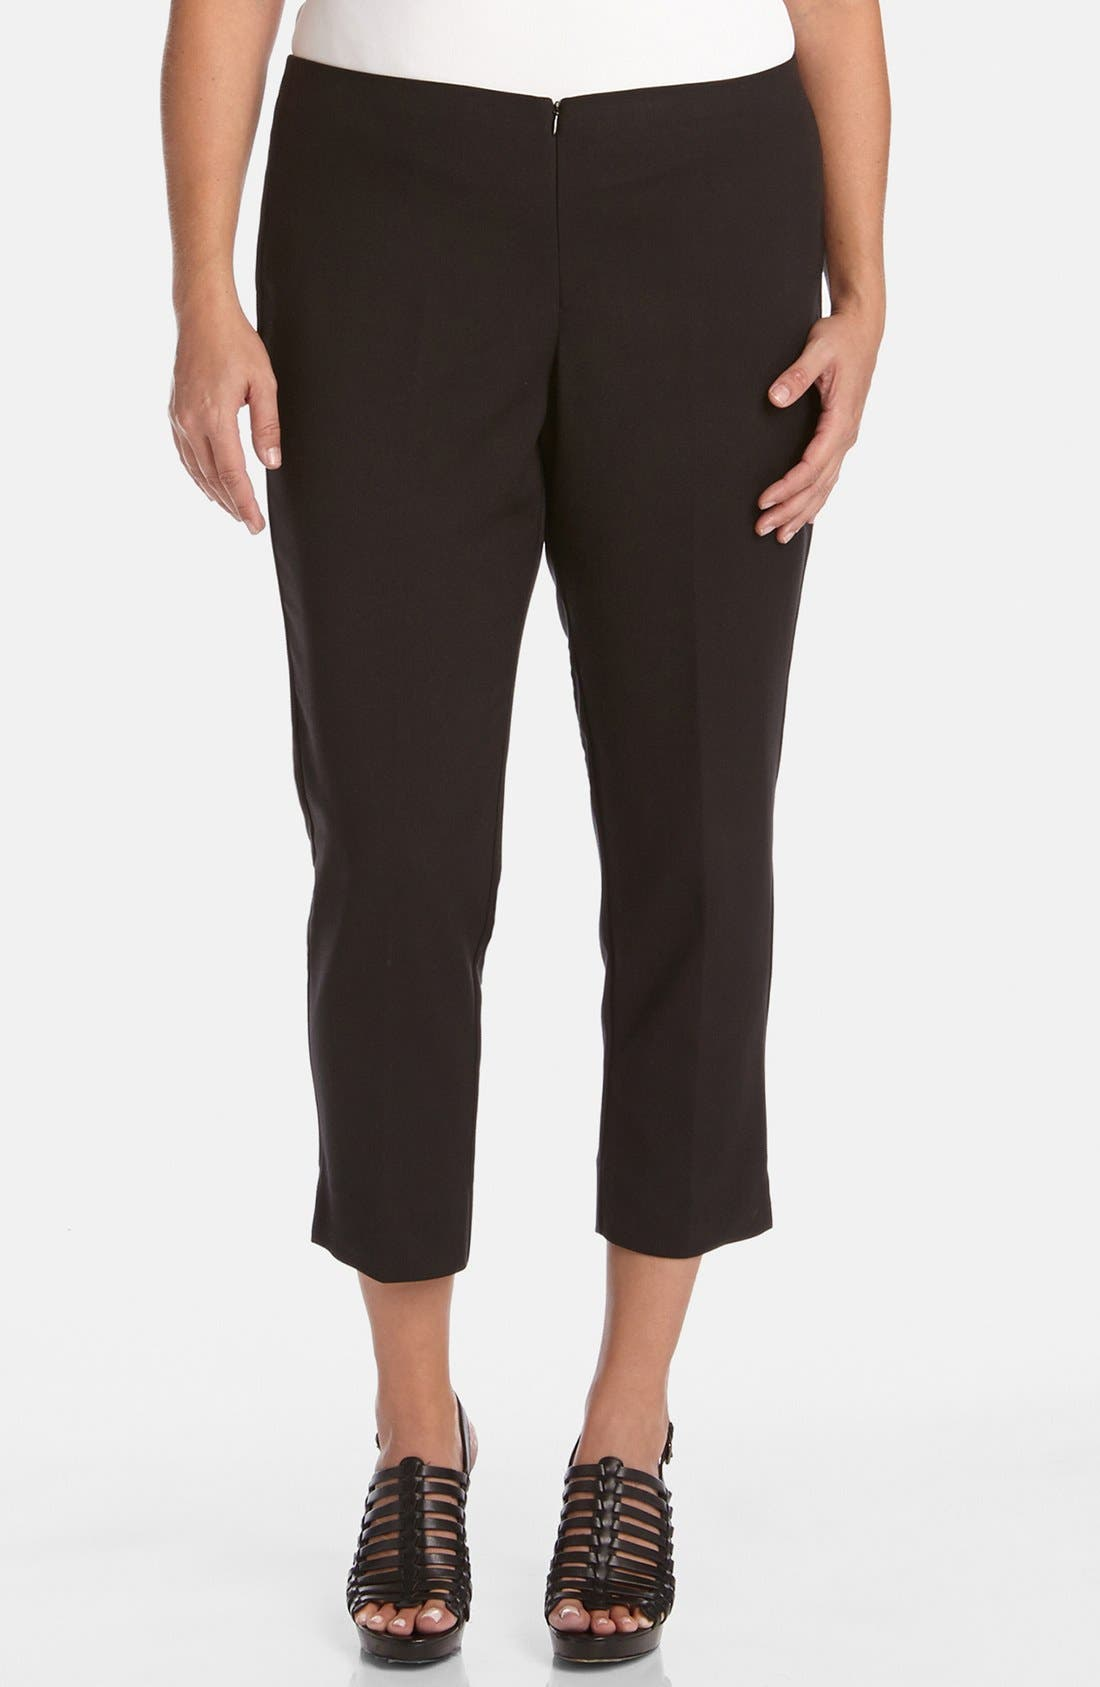 Stretch Capri Pants,                             Main thumbnail 1, color,                             BLACK